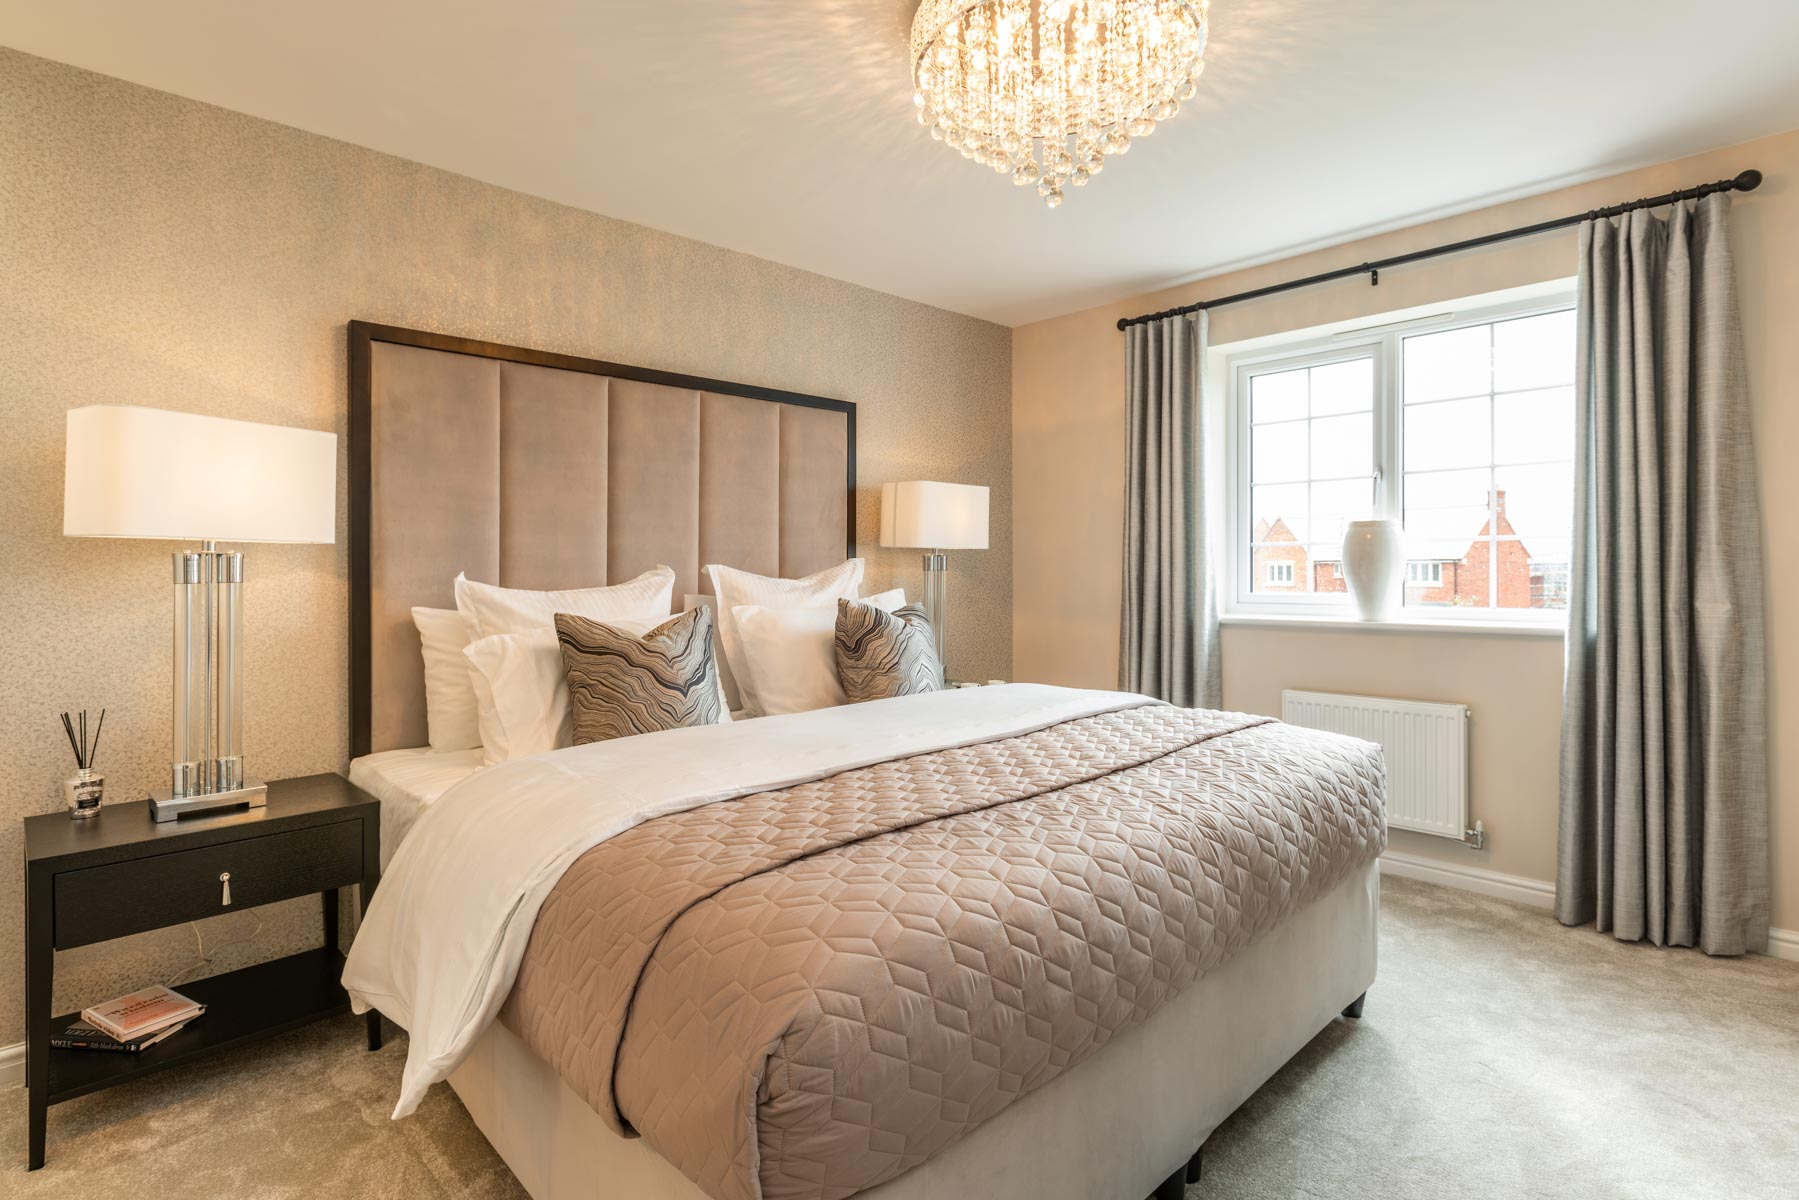 Garrton Master bedroom